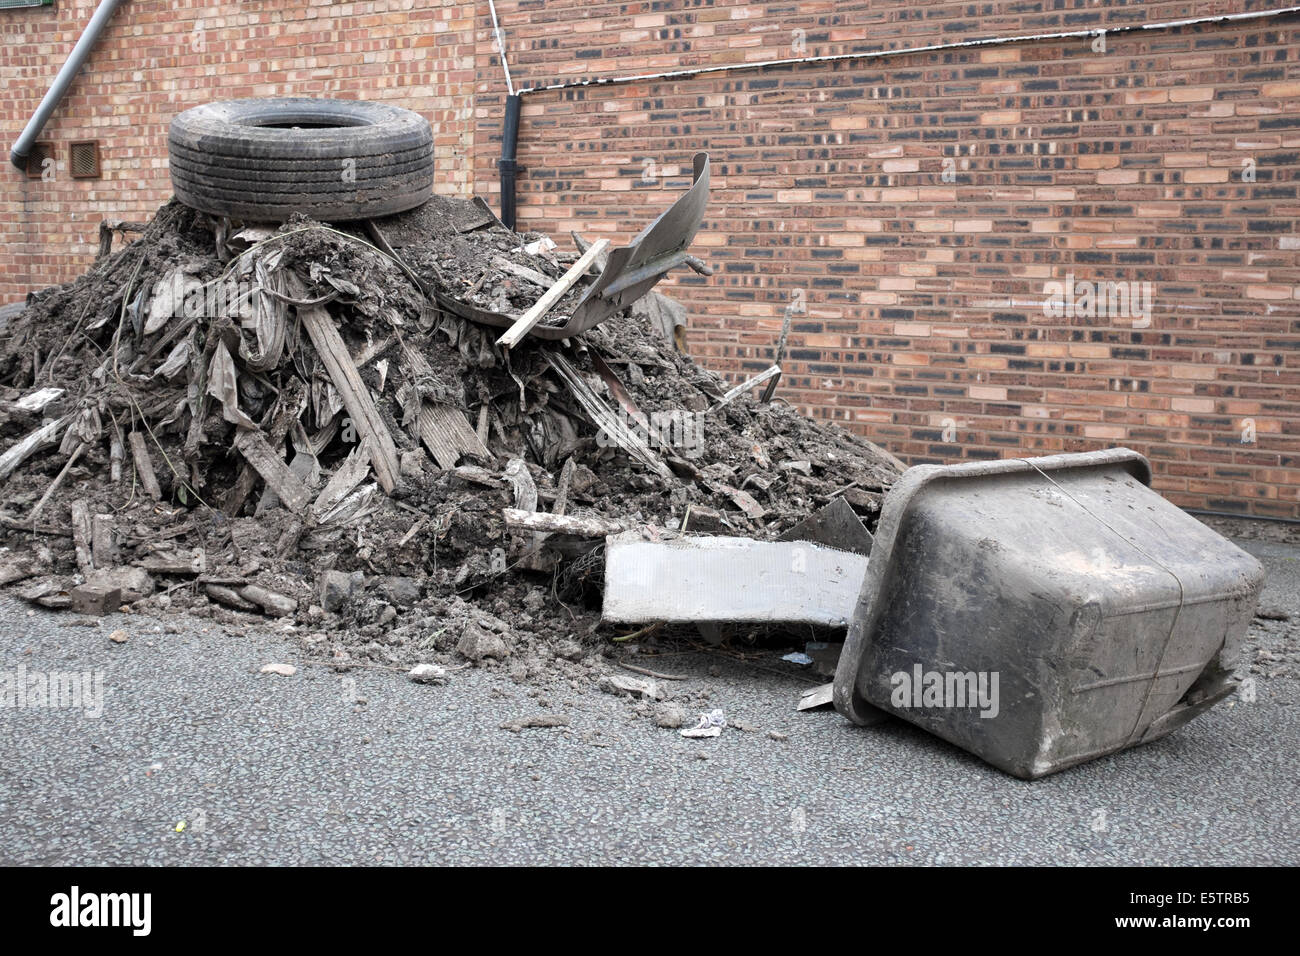 Fly Tipping Waste Rubbish Illegal Disposal Dumping - Stock Image